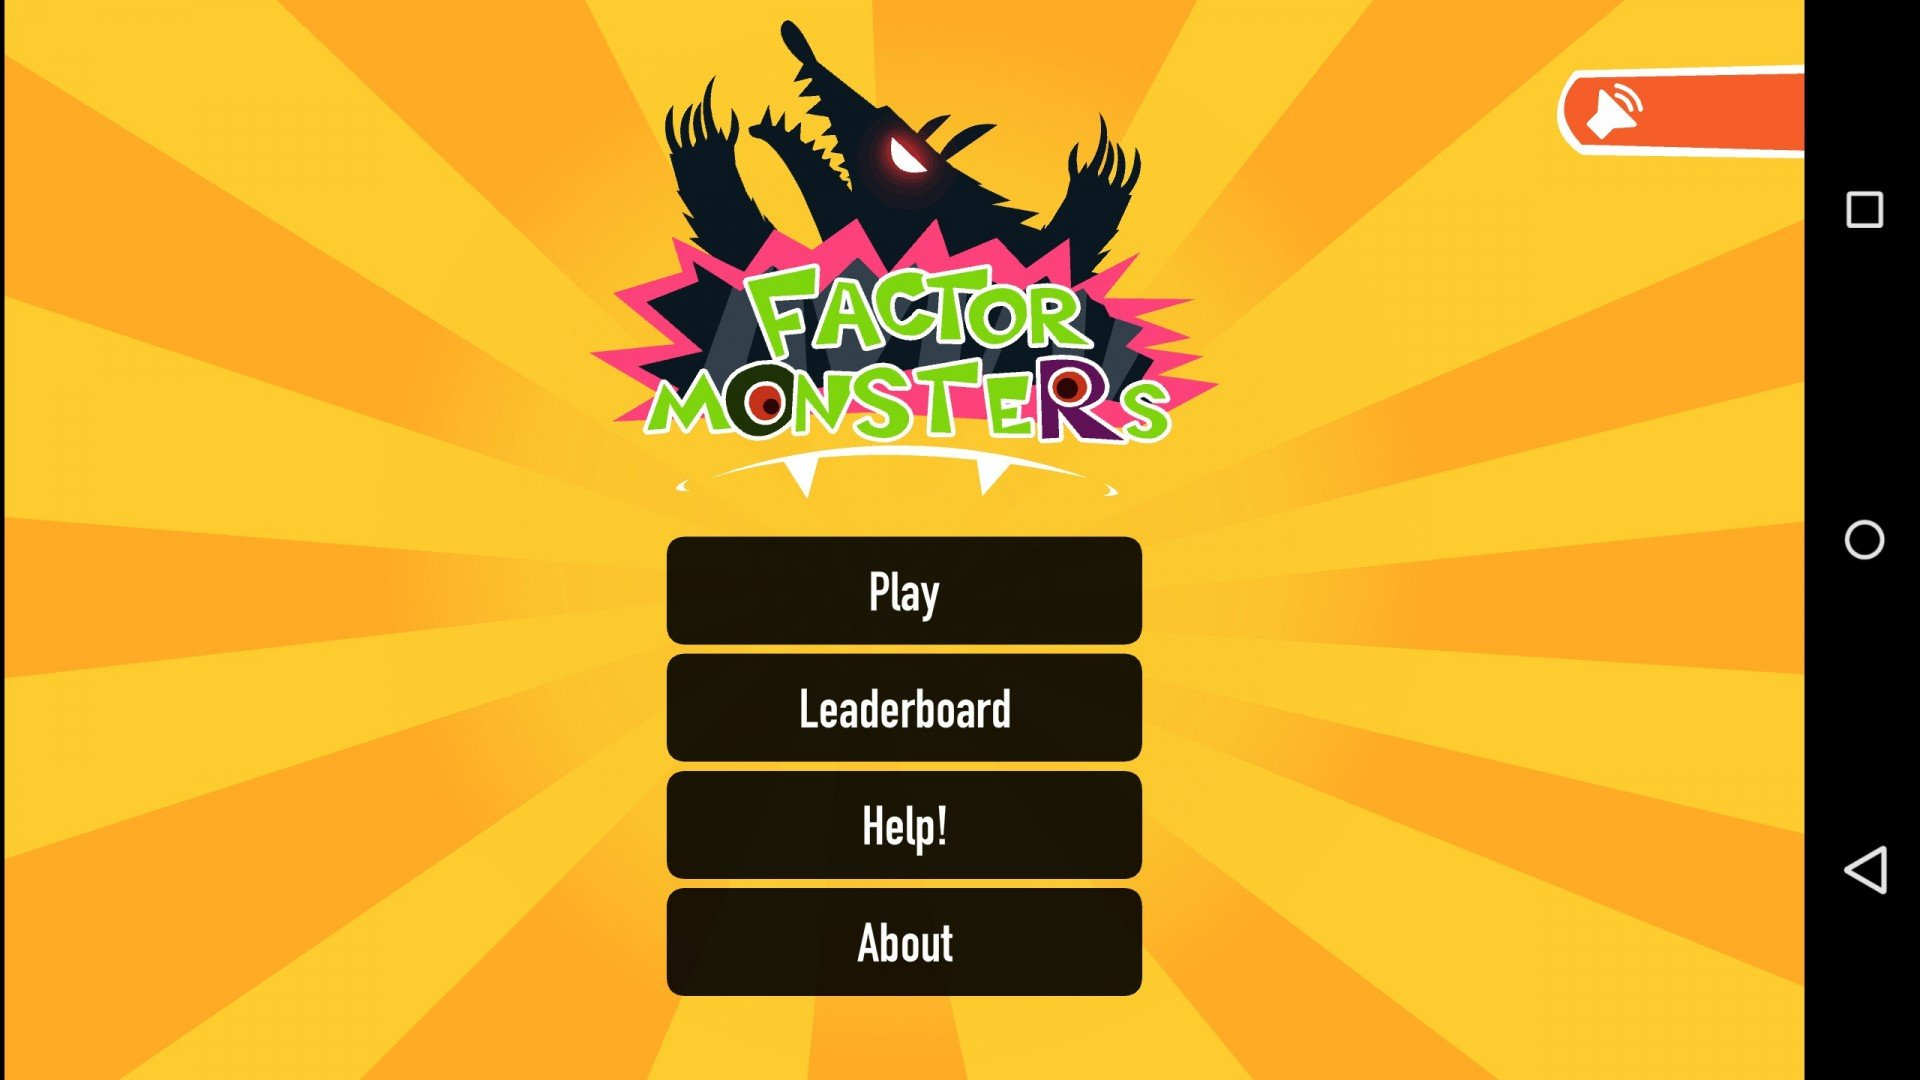 Factor Monsters Review A Fast Paced Factoring Game